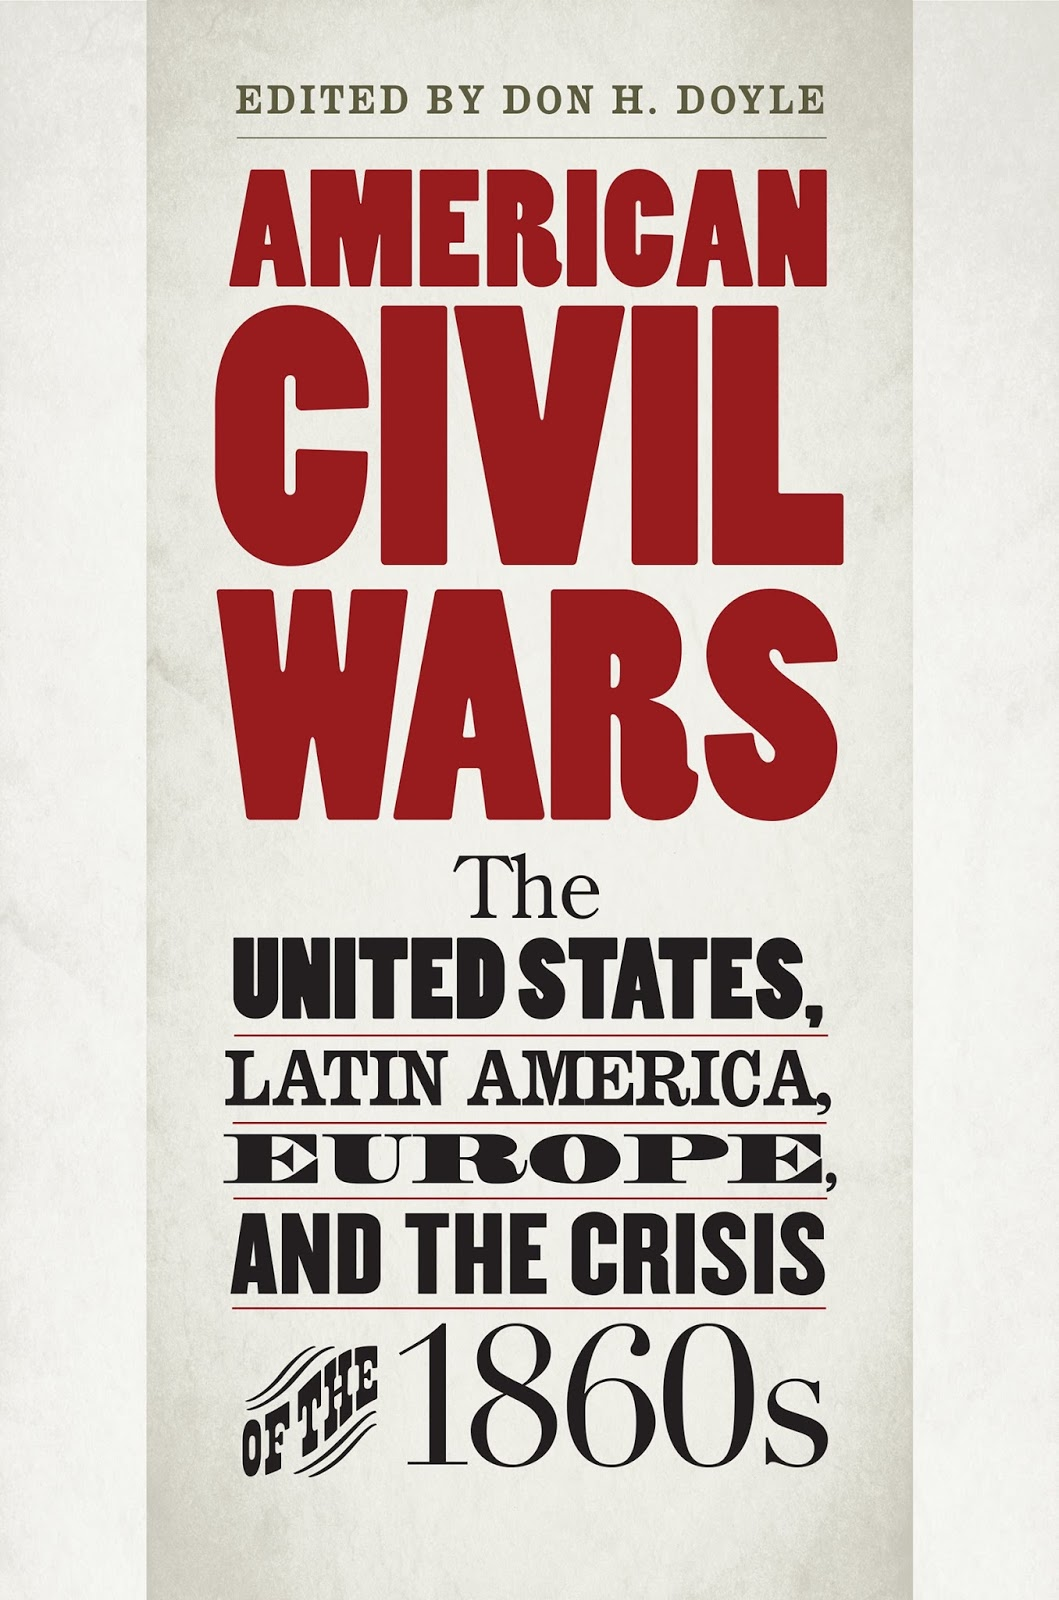 a report on two wars in the united states of america the war for independence and the civil war America's 2nd war of independence prageru  the united states had to fight not one, but two wars for its independence  the british precipitated the war by failing to recognize the united.